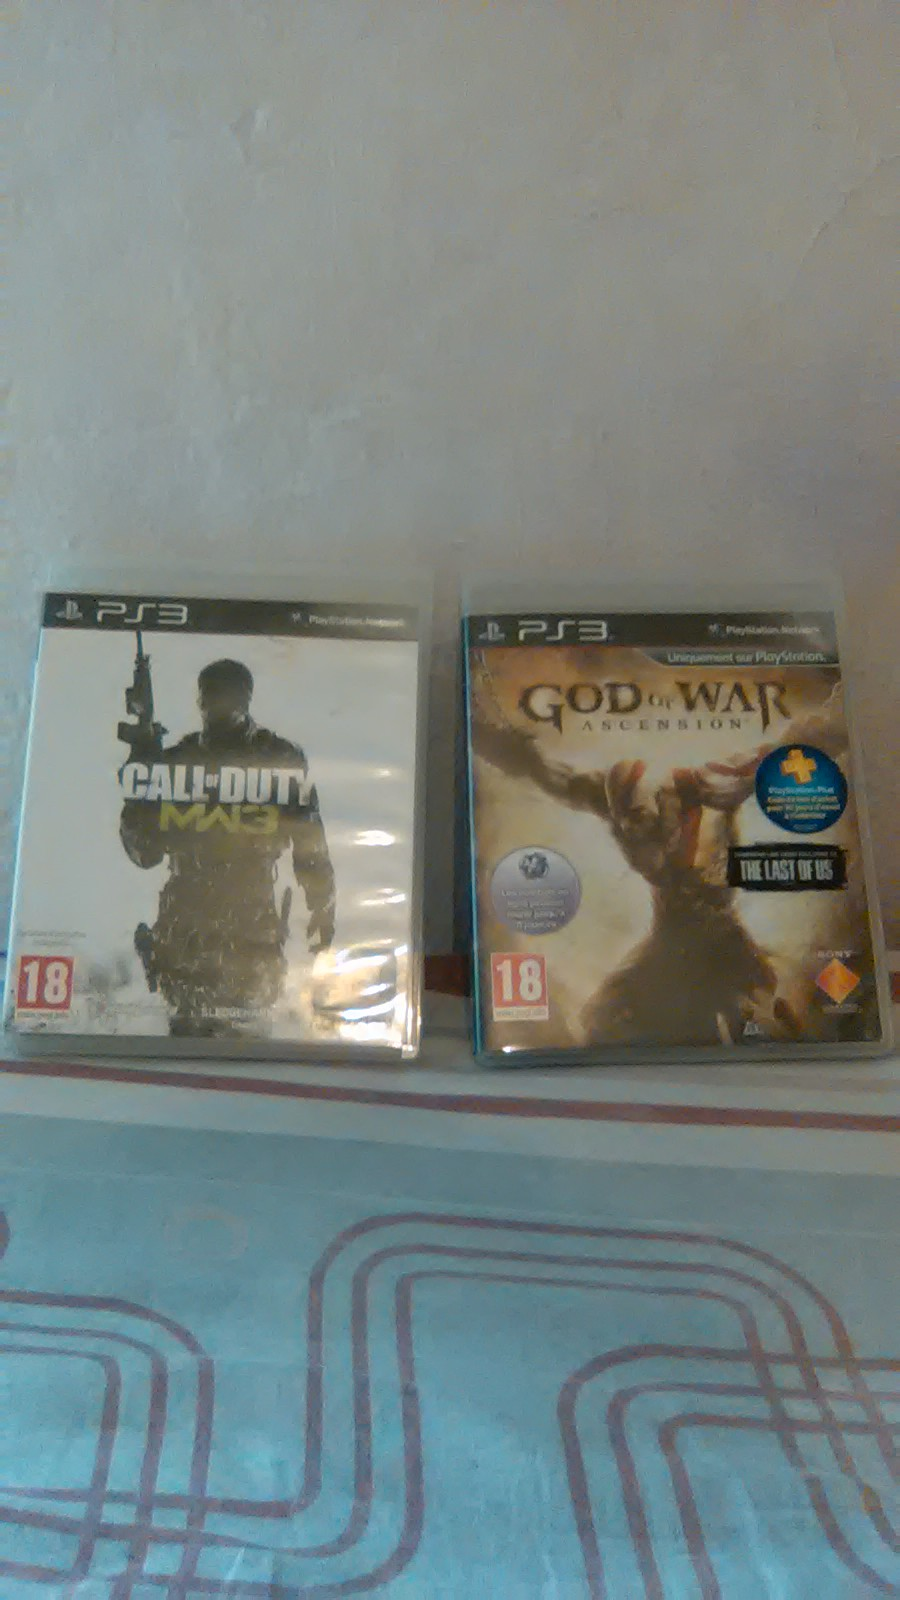 jeux ps3 god of war et call of duty wm3 ouedkniss